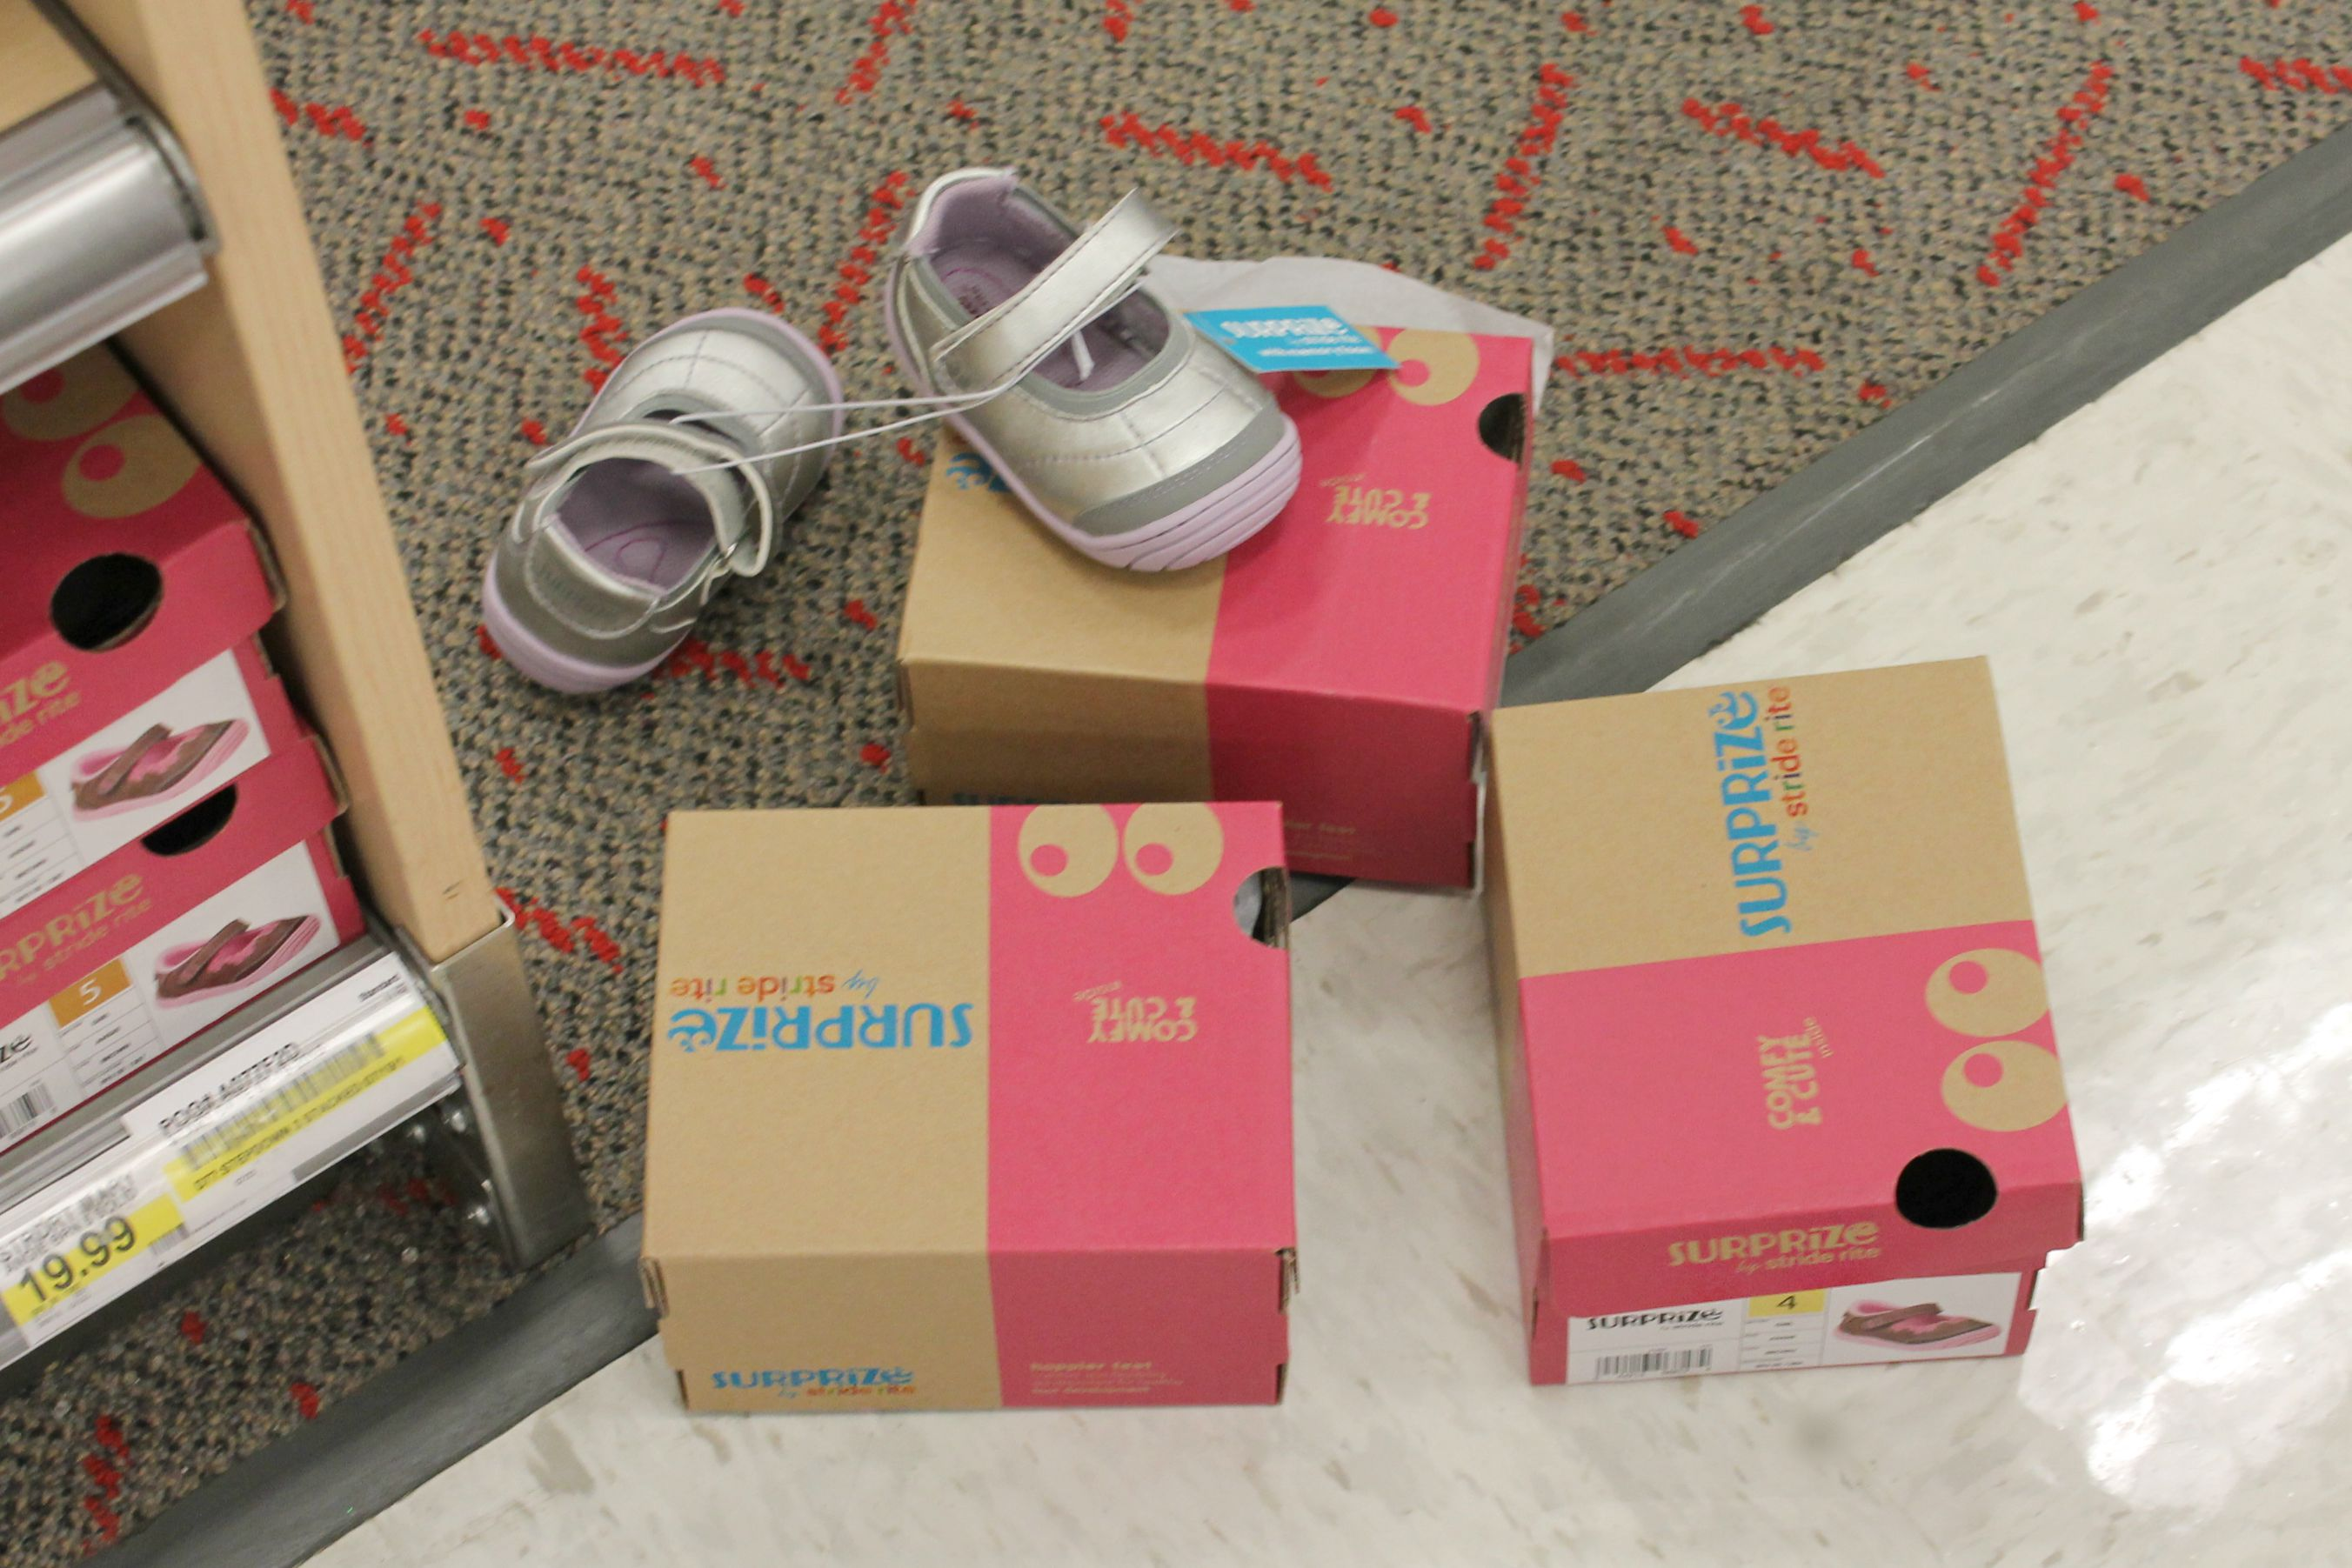 Stride Rite Surprize baby shoes